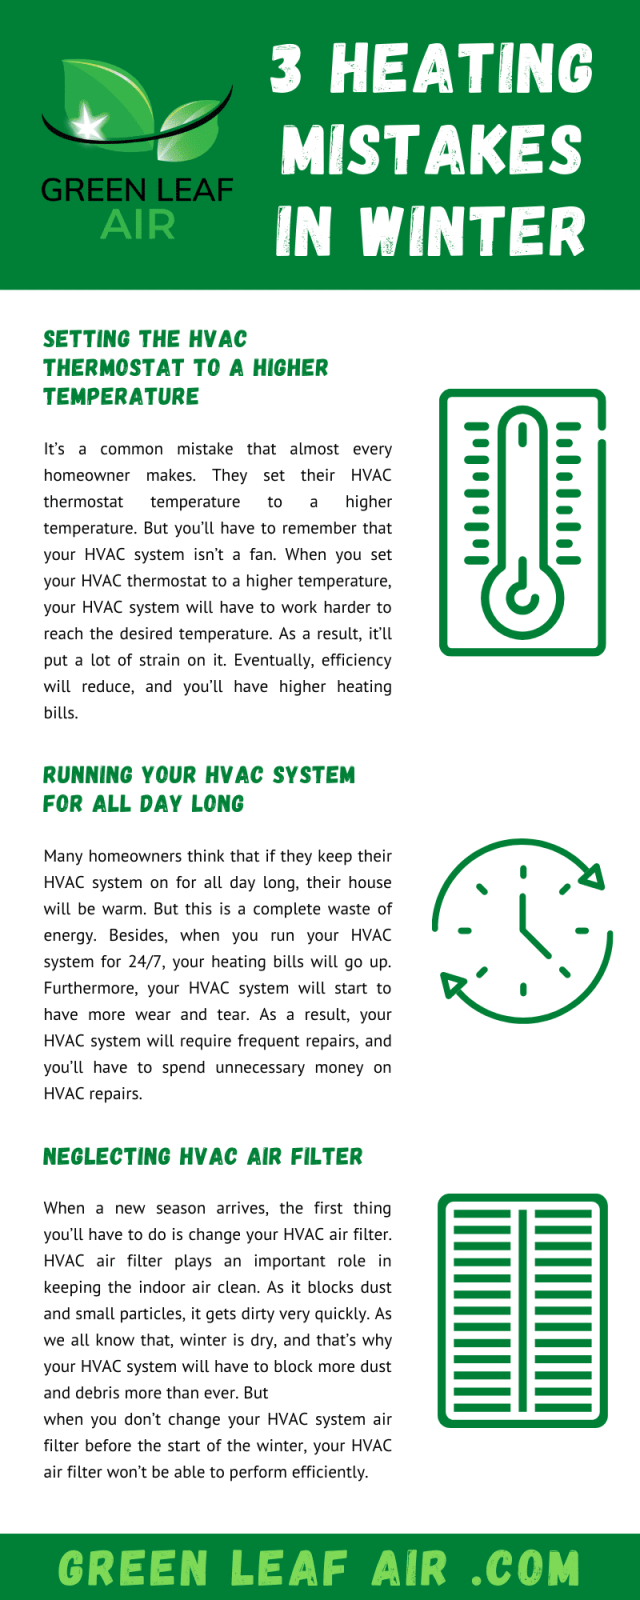 3 Heating Mistakes in Winter